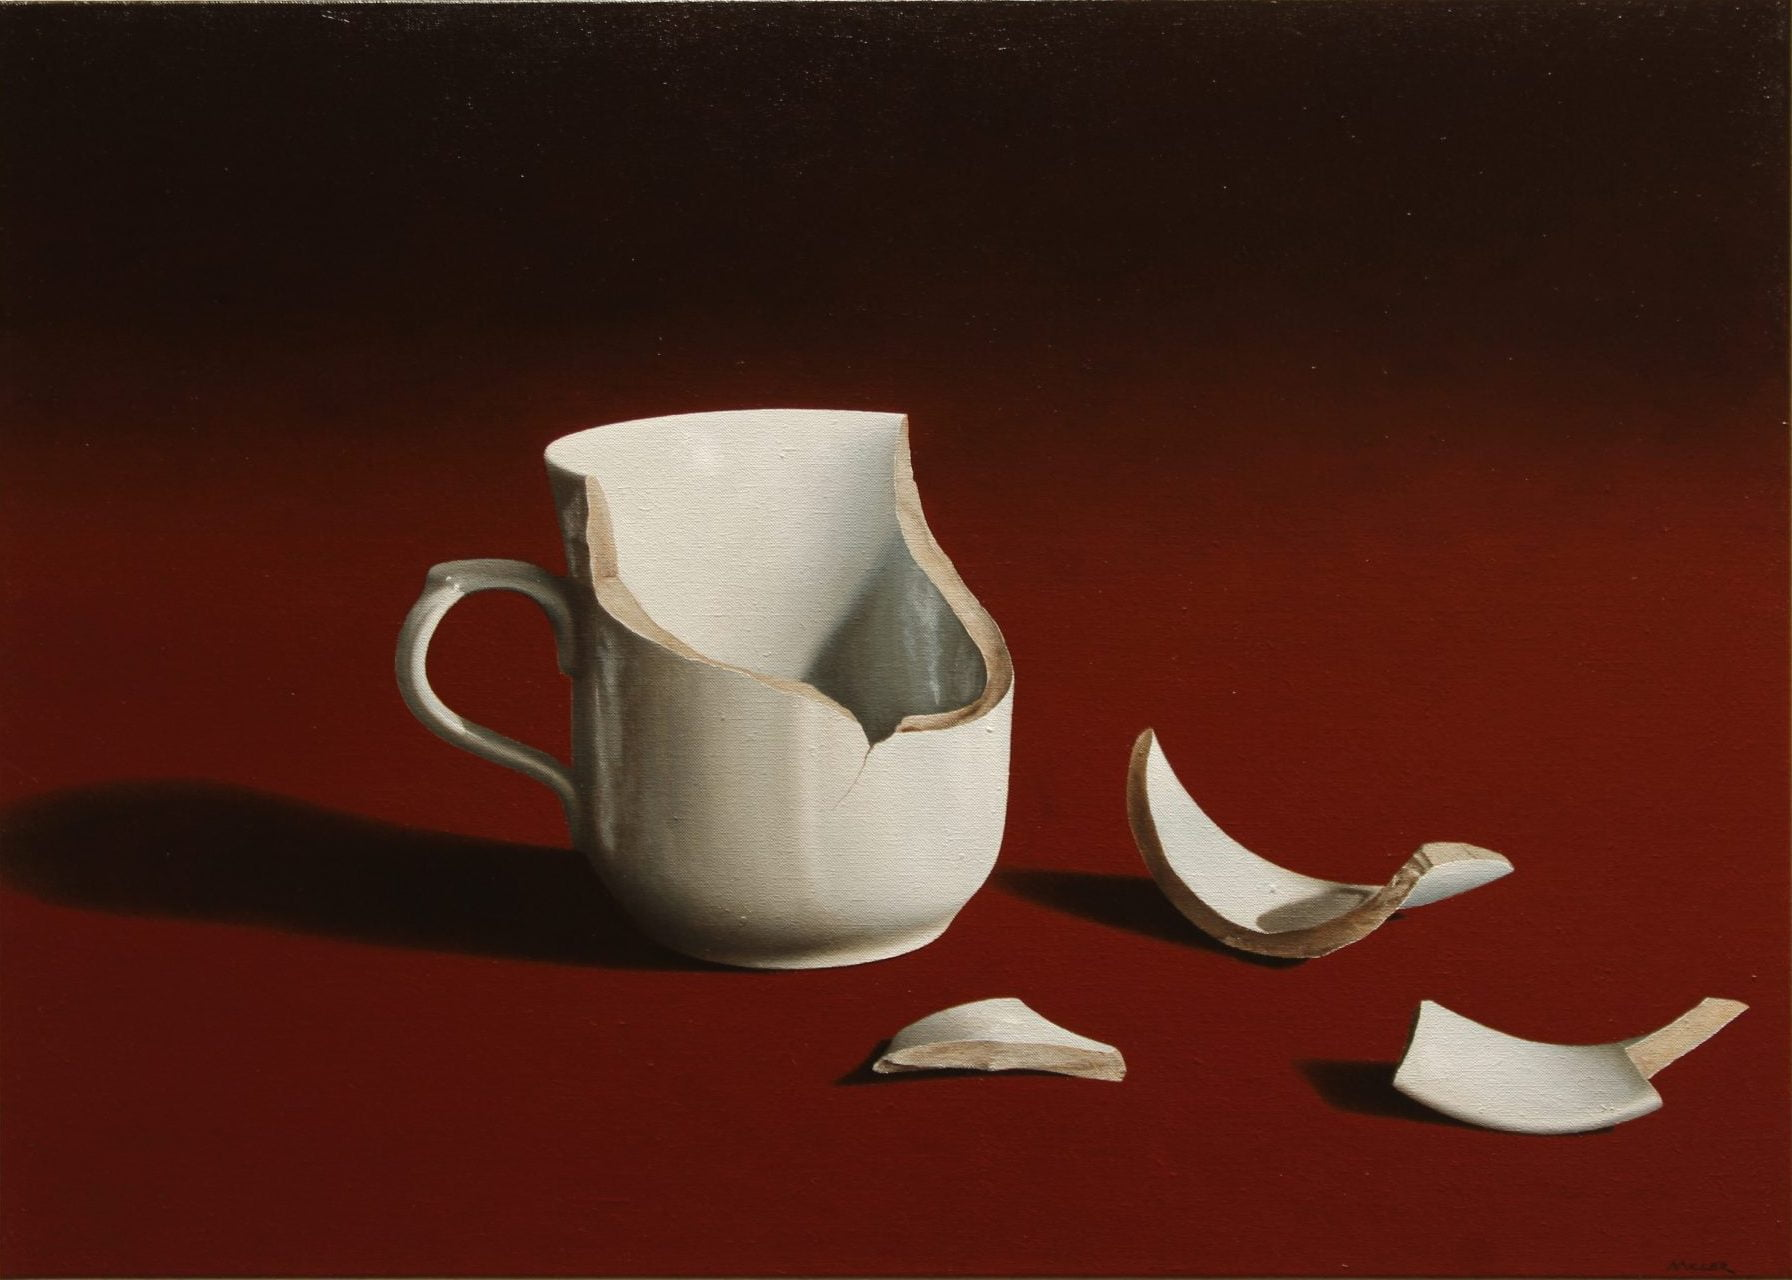 A Teacup In A Storm